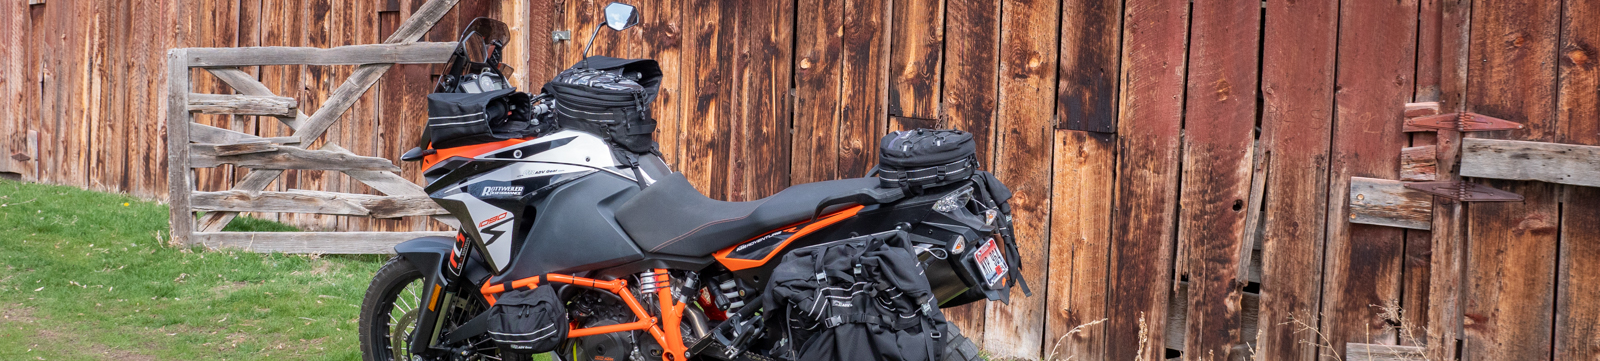 OBR ADV Gear Motorcycle Bags and Grip Mitts